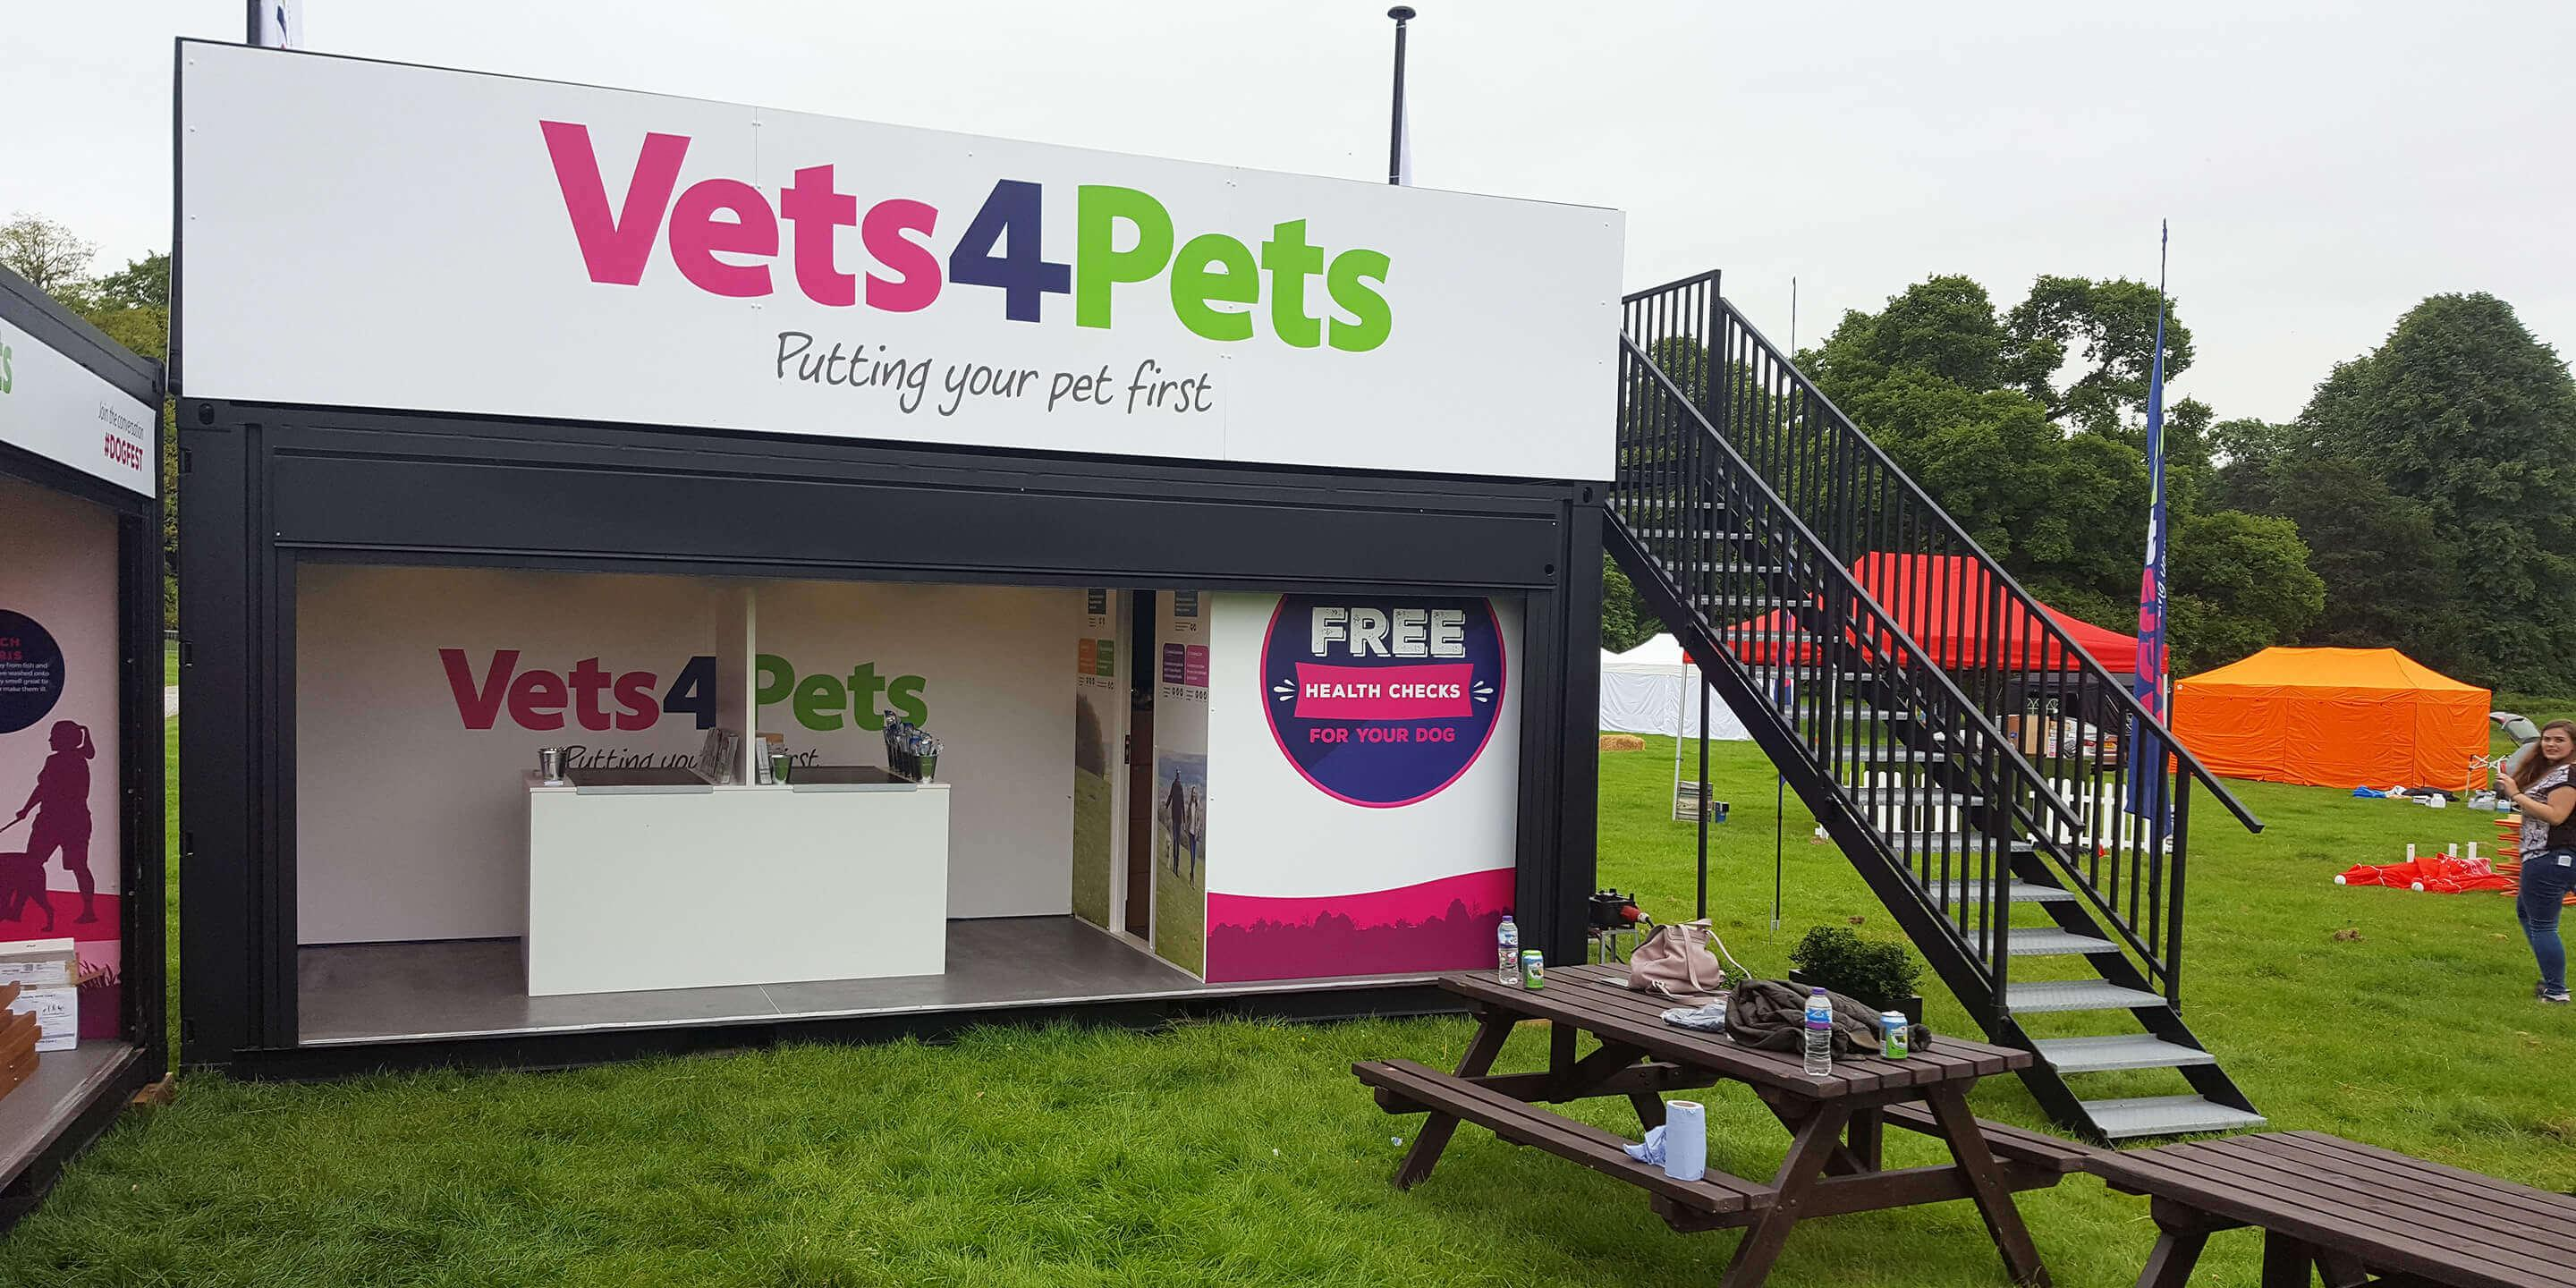 Event Shipping Containers: Statement for Vets4Pets Activation